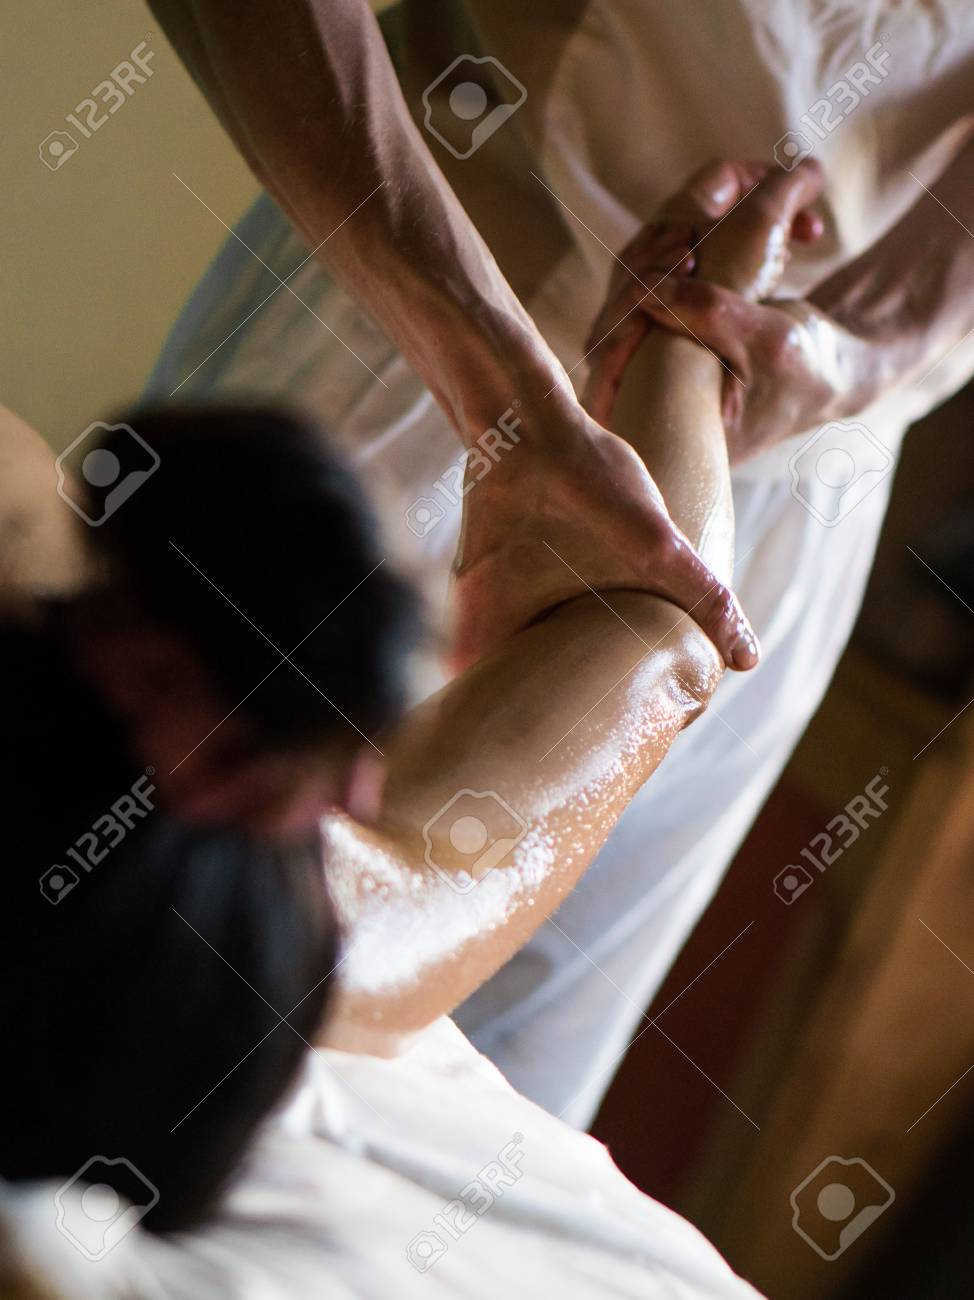 Professional Masseur Doing Deep Tissue Oiled Massage To A Girl At Ayurveda Massage Session Stock Photo